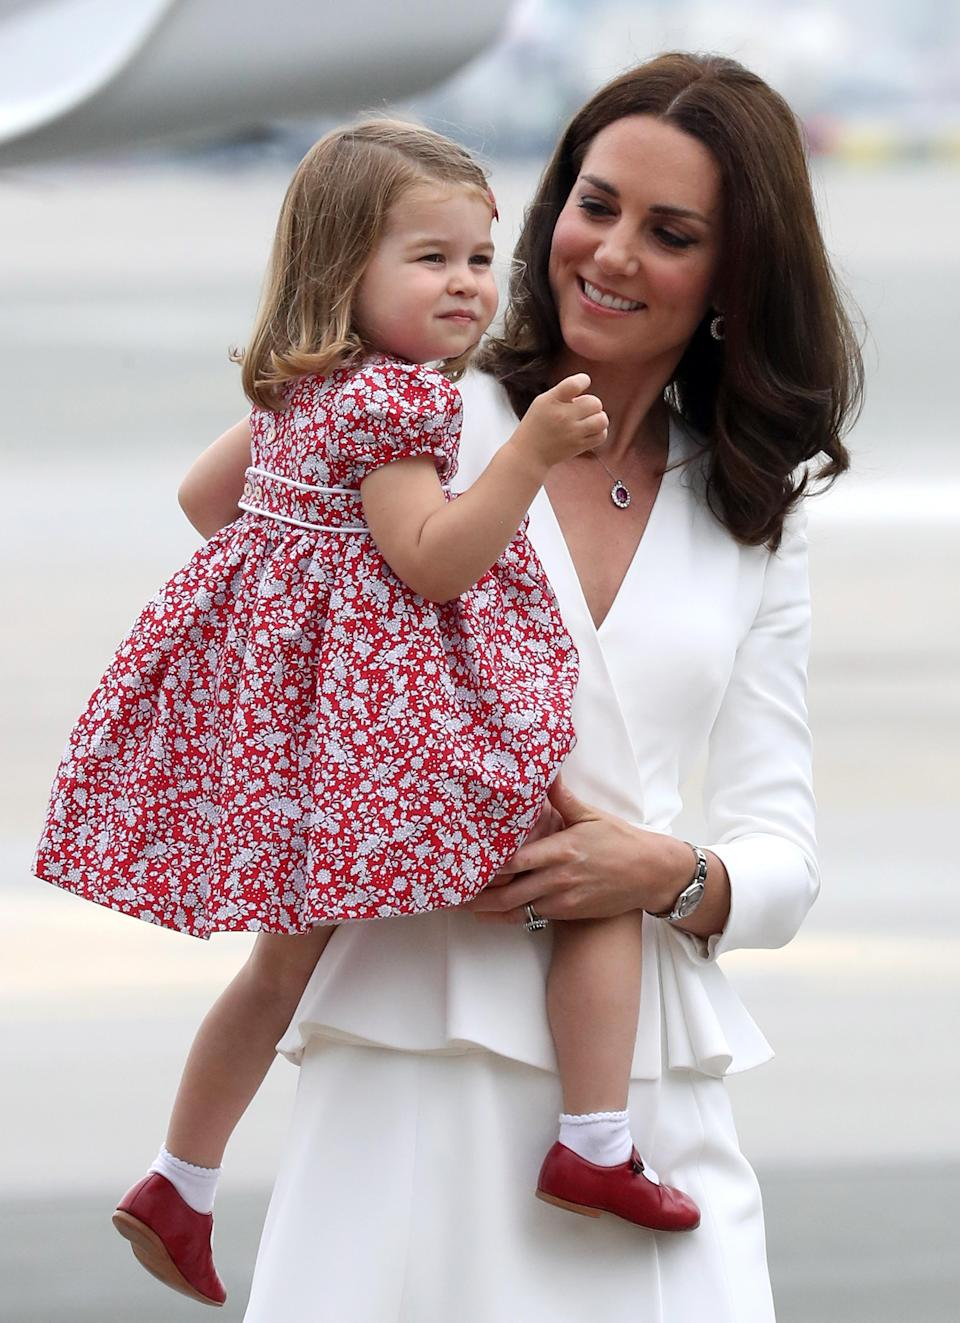 <p>In this adorable shot, Kate Middleton looks to be staring at her daughter Princess Charlotte with such love and awe.</p>